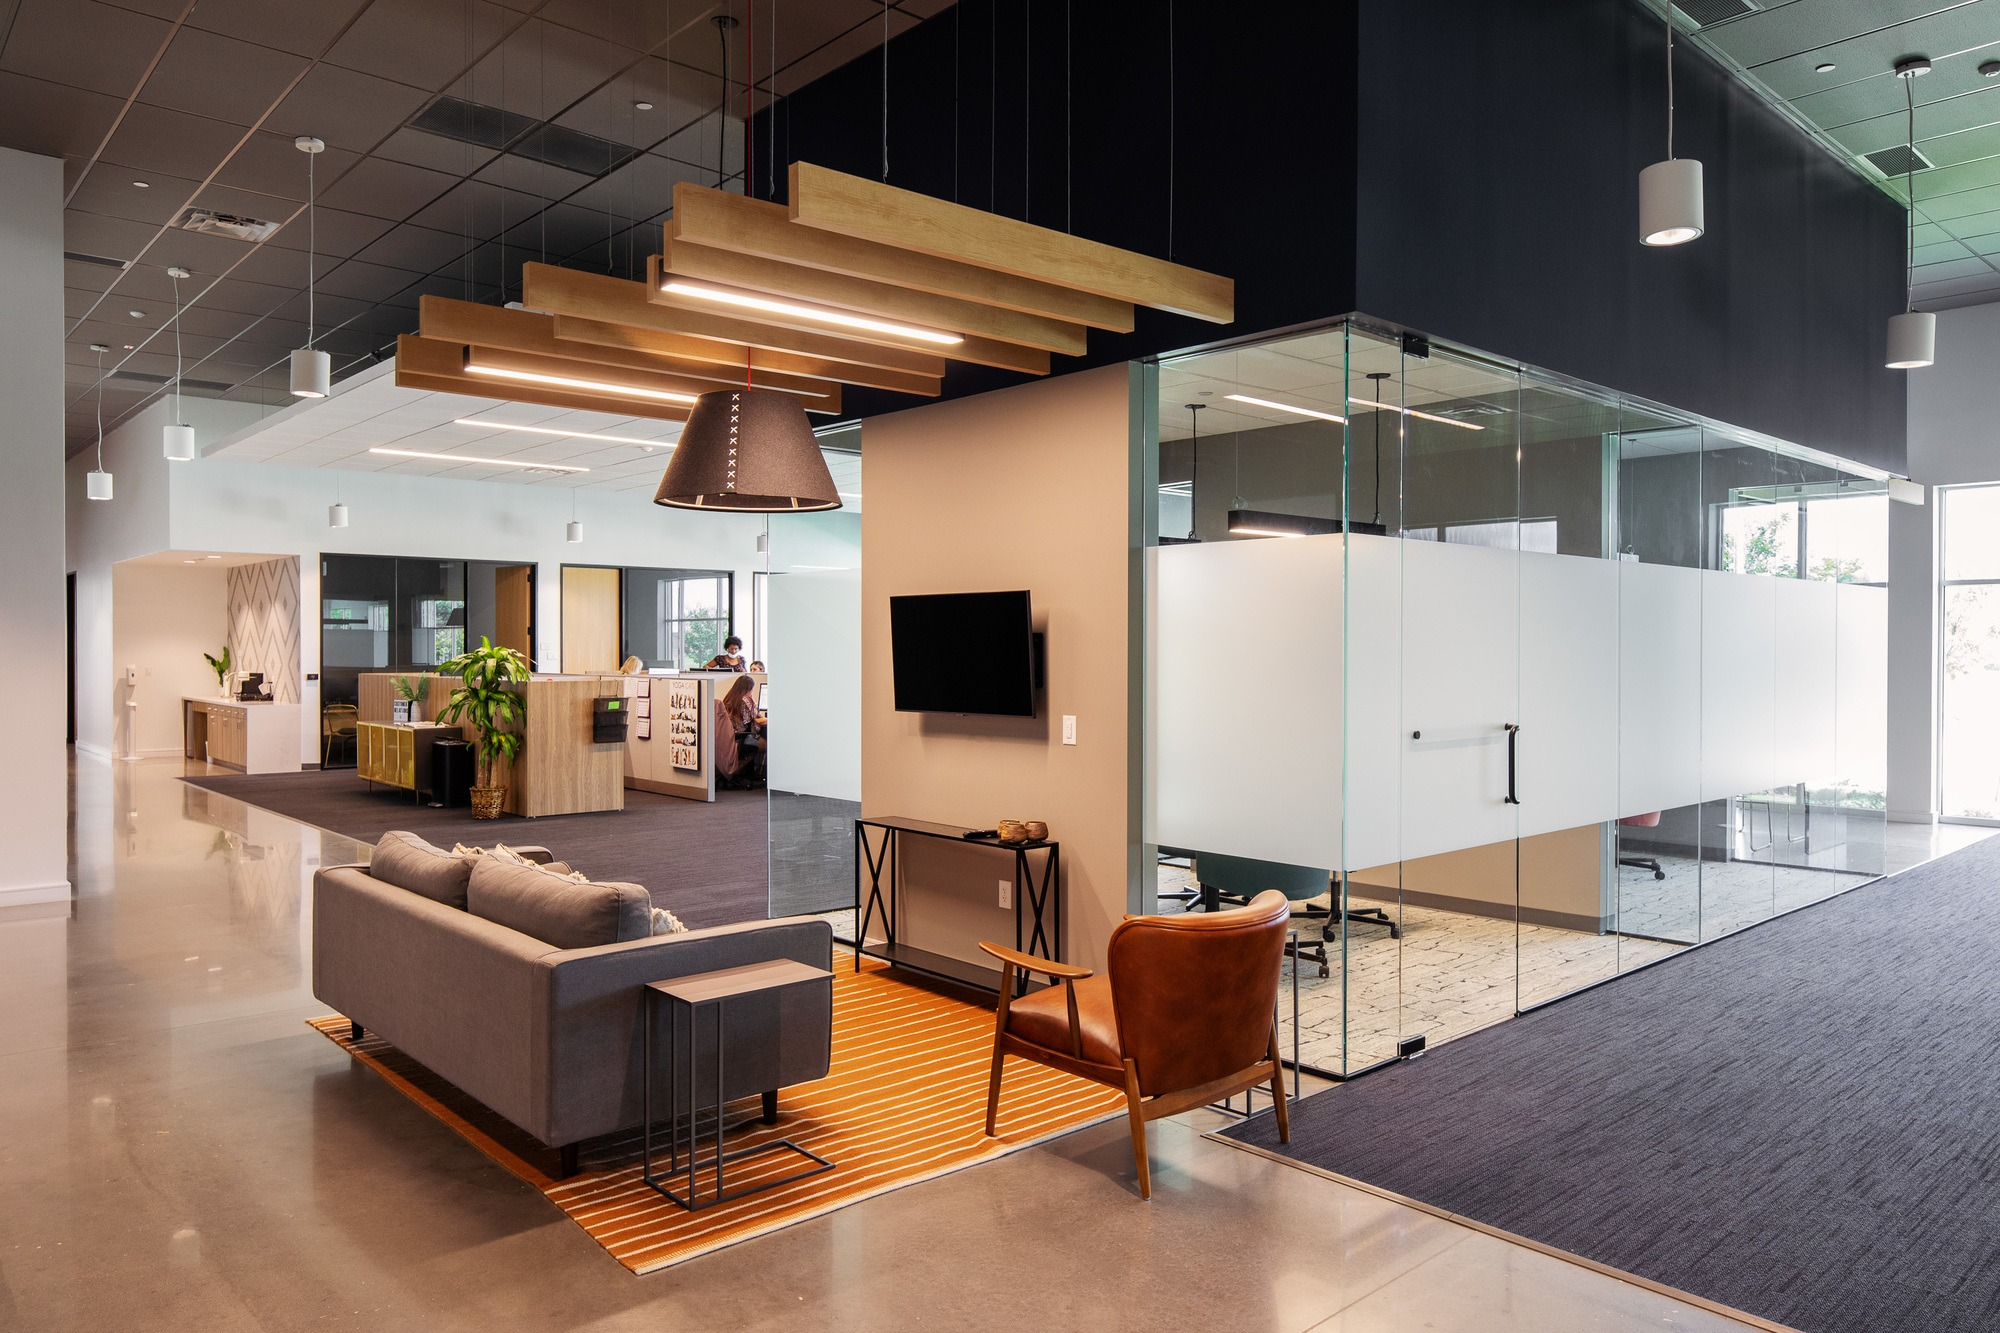 KVP Office Interior Project by O'Brien Architects